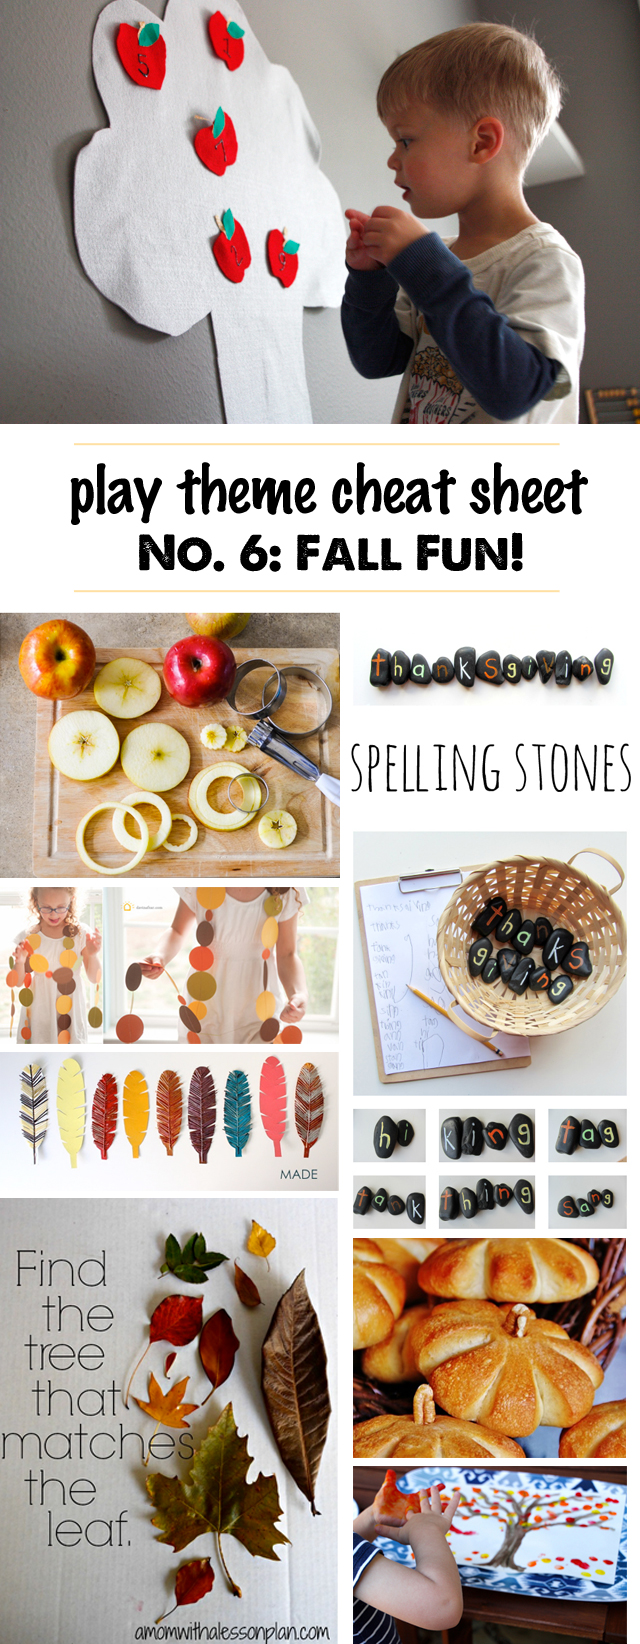 Kids Activities for Fall- Great list of easy set-up play ideas for fall, best books for fall, kid-friendly recipes for fall, and even a few fun fall toys.